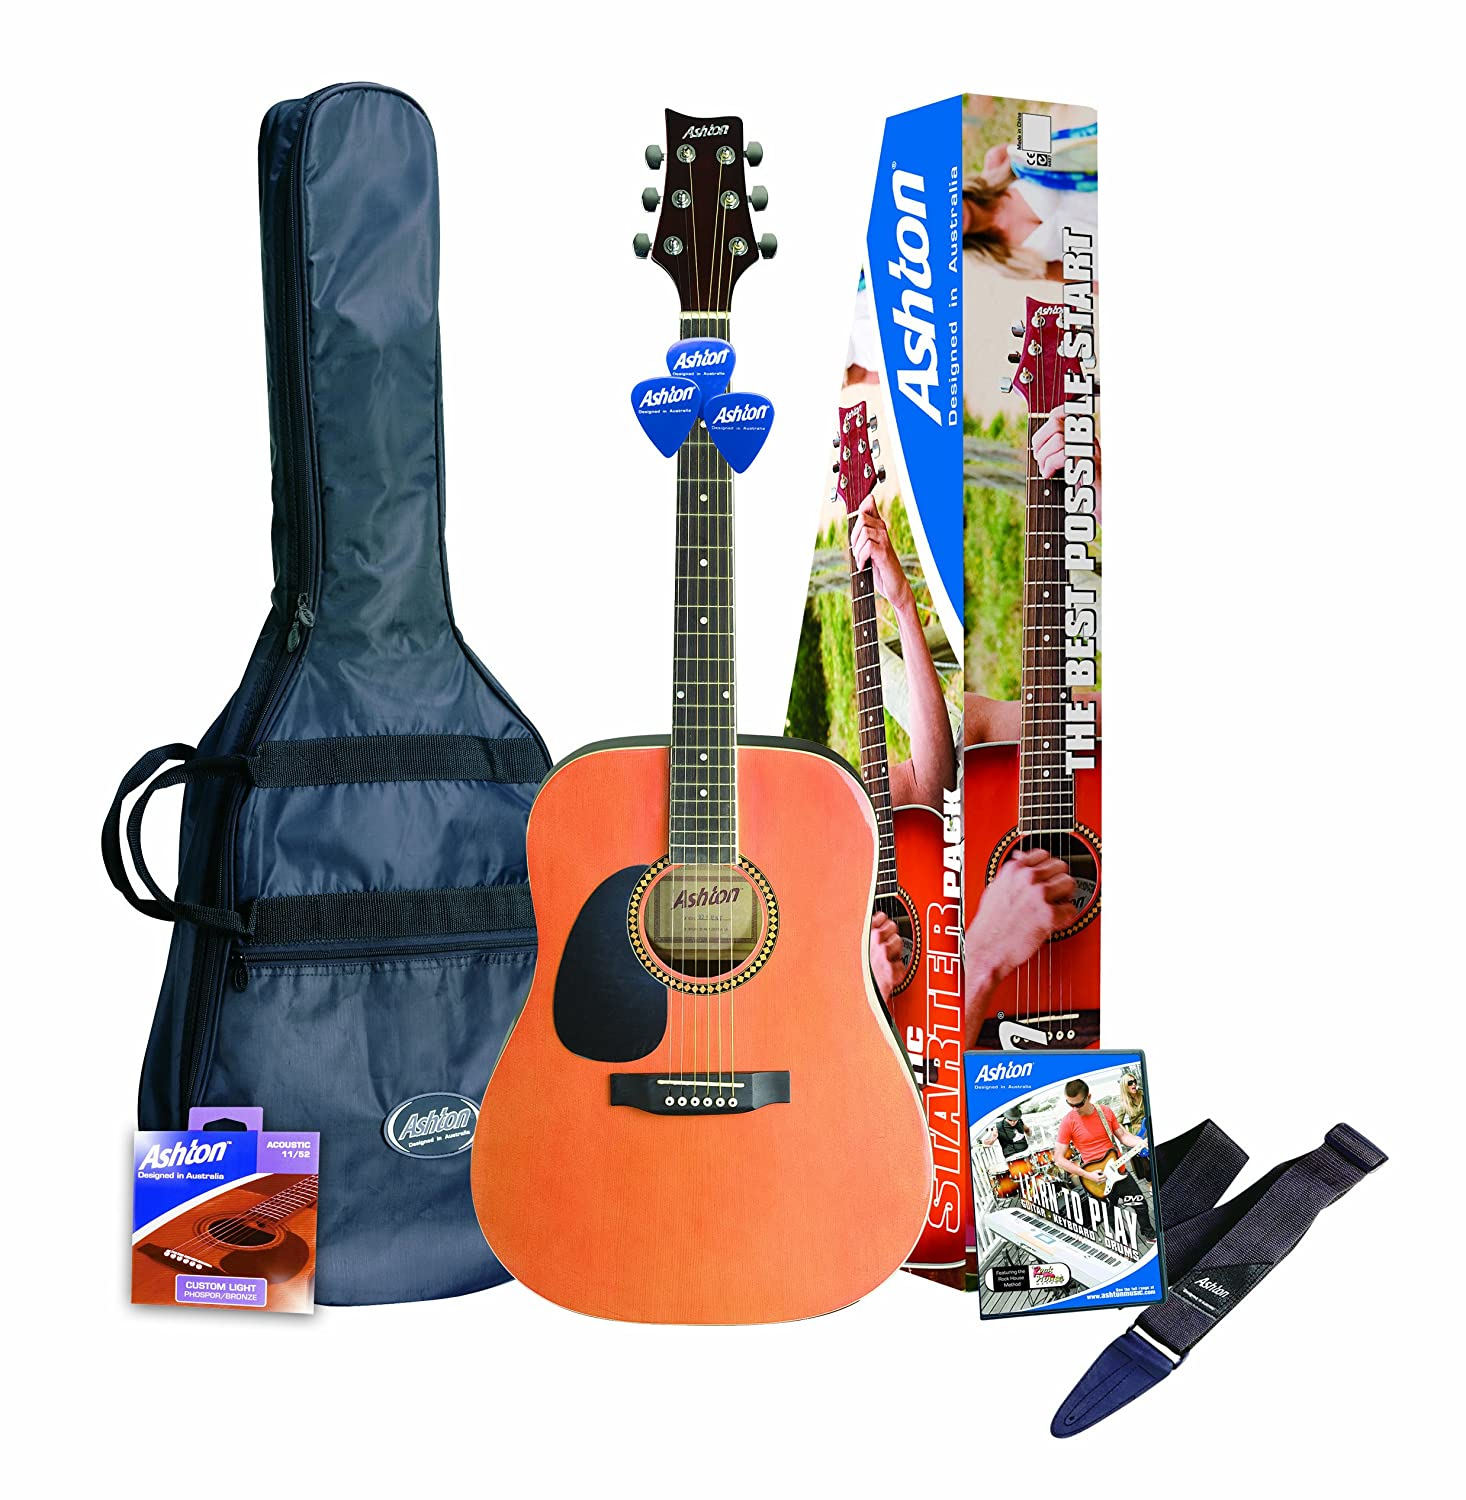 ashton spd25ltbb left handed acoustic guitar starter pack